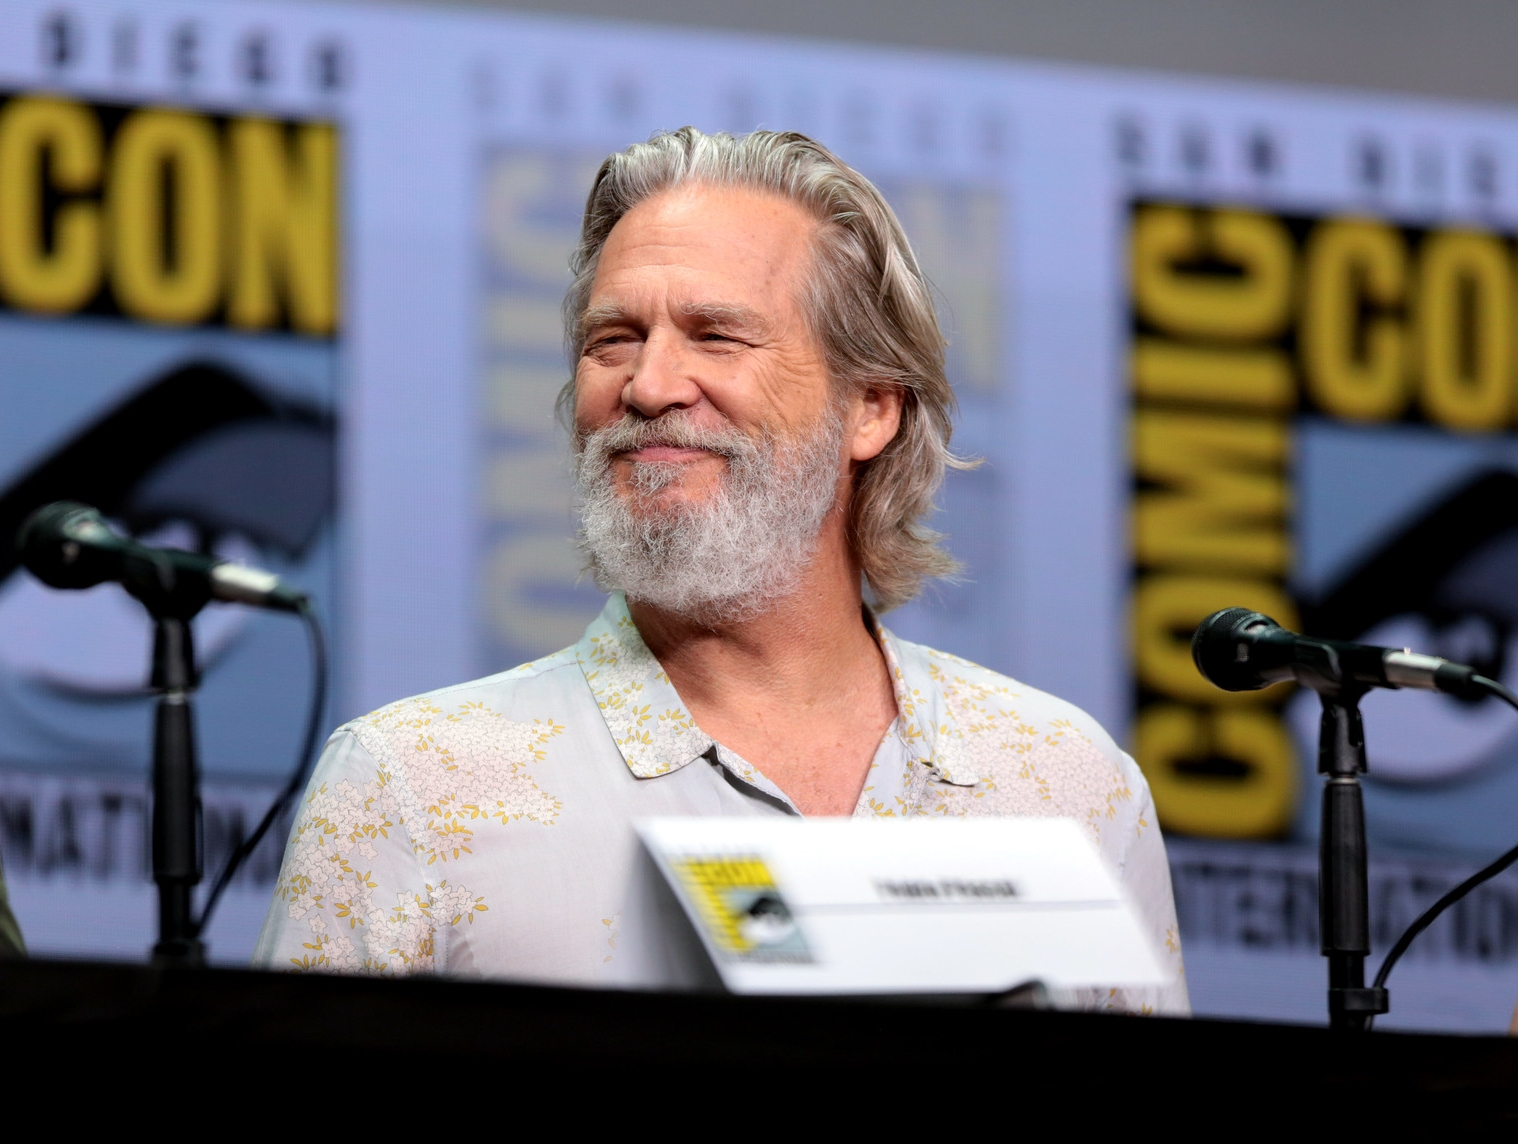 Flickr-Jeff Bridges-Gage Skidmore-geschnitten